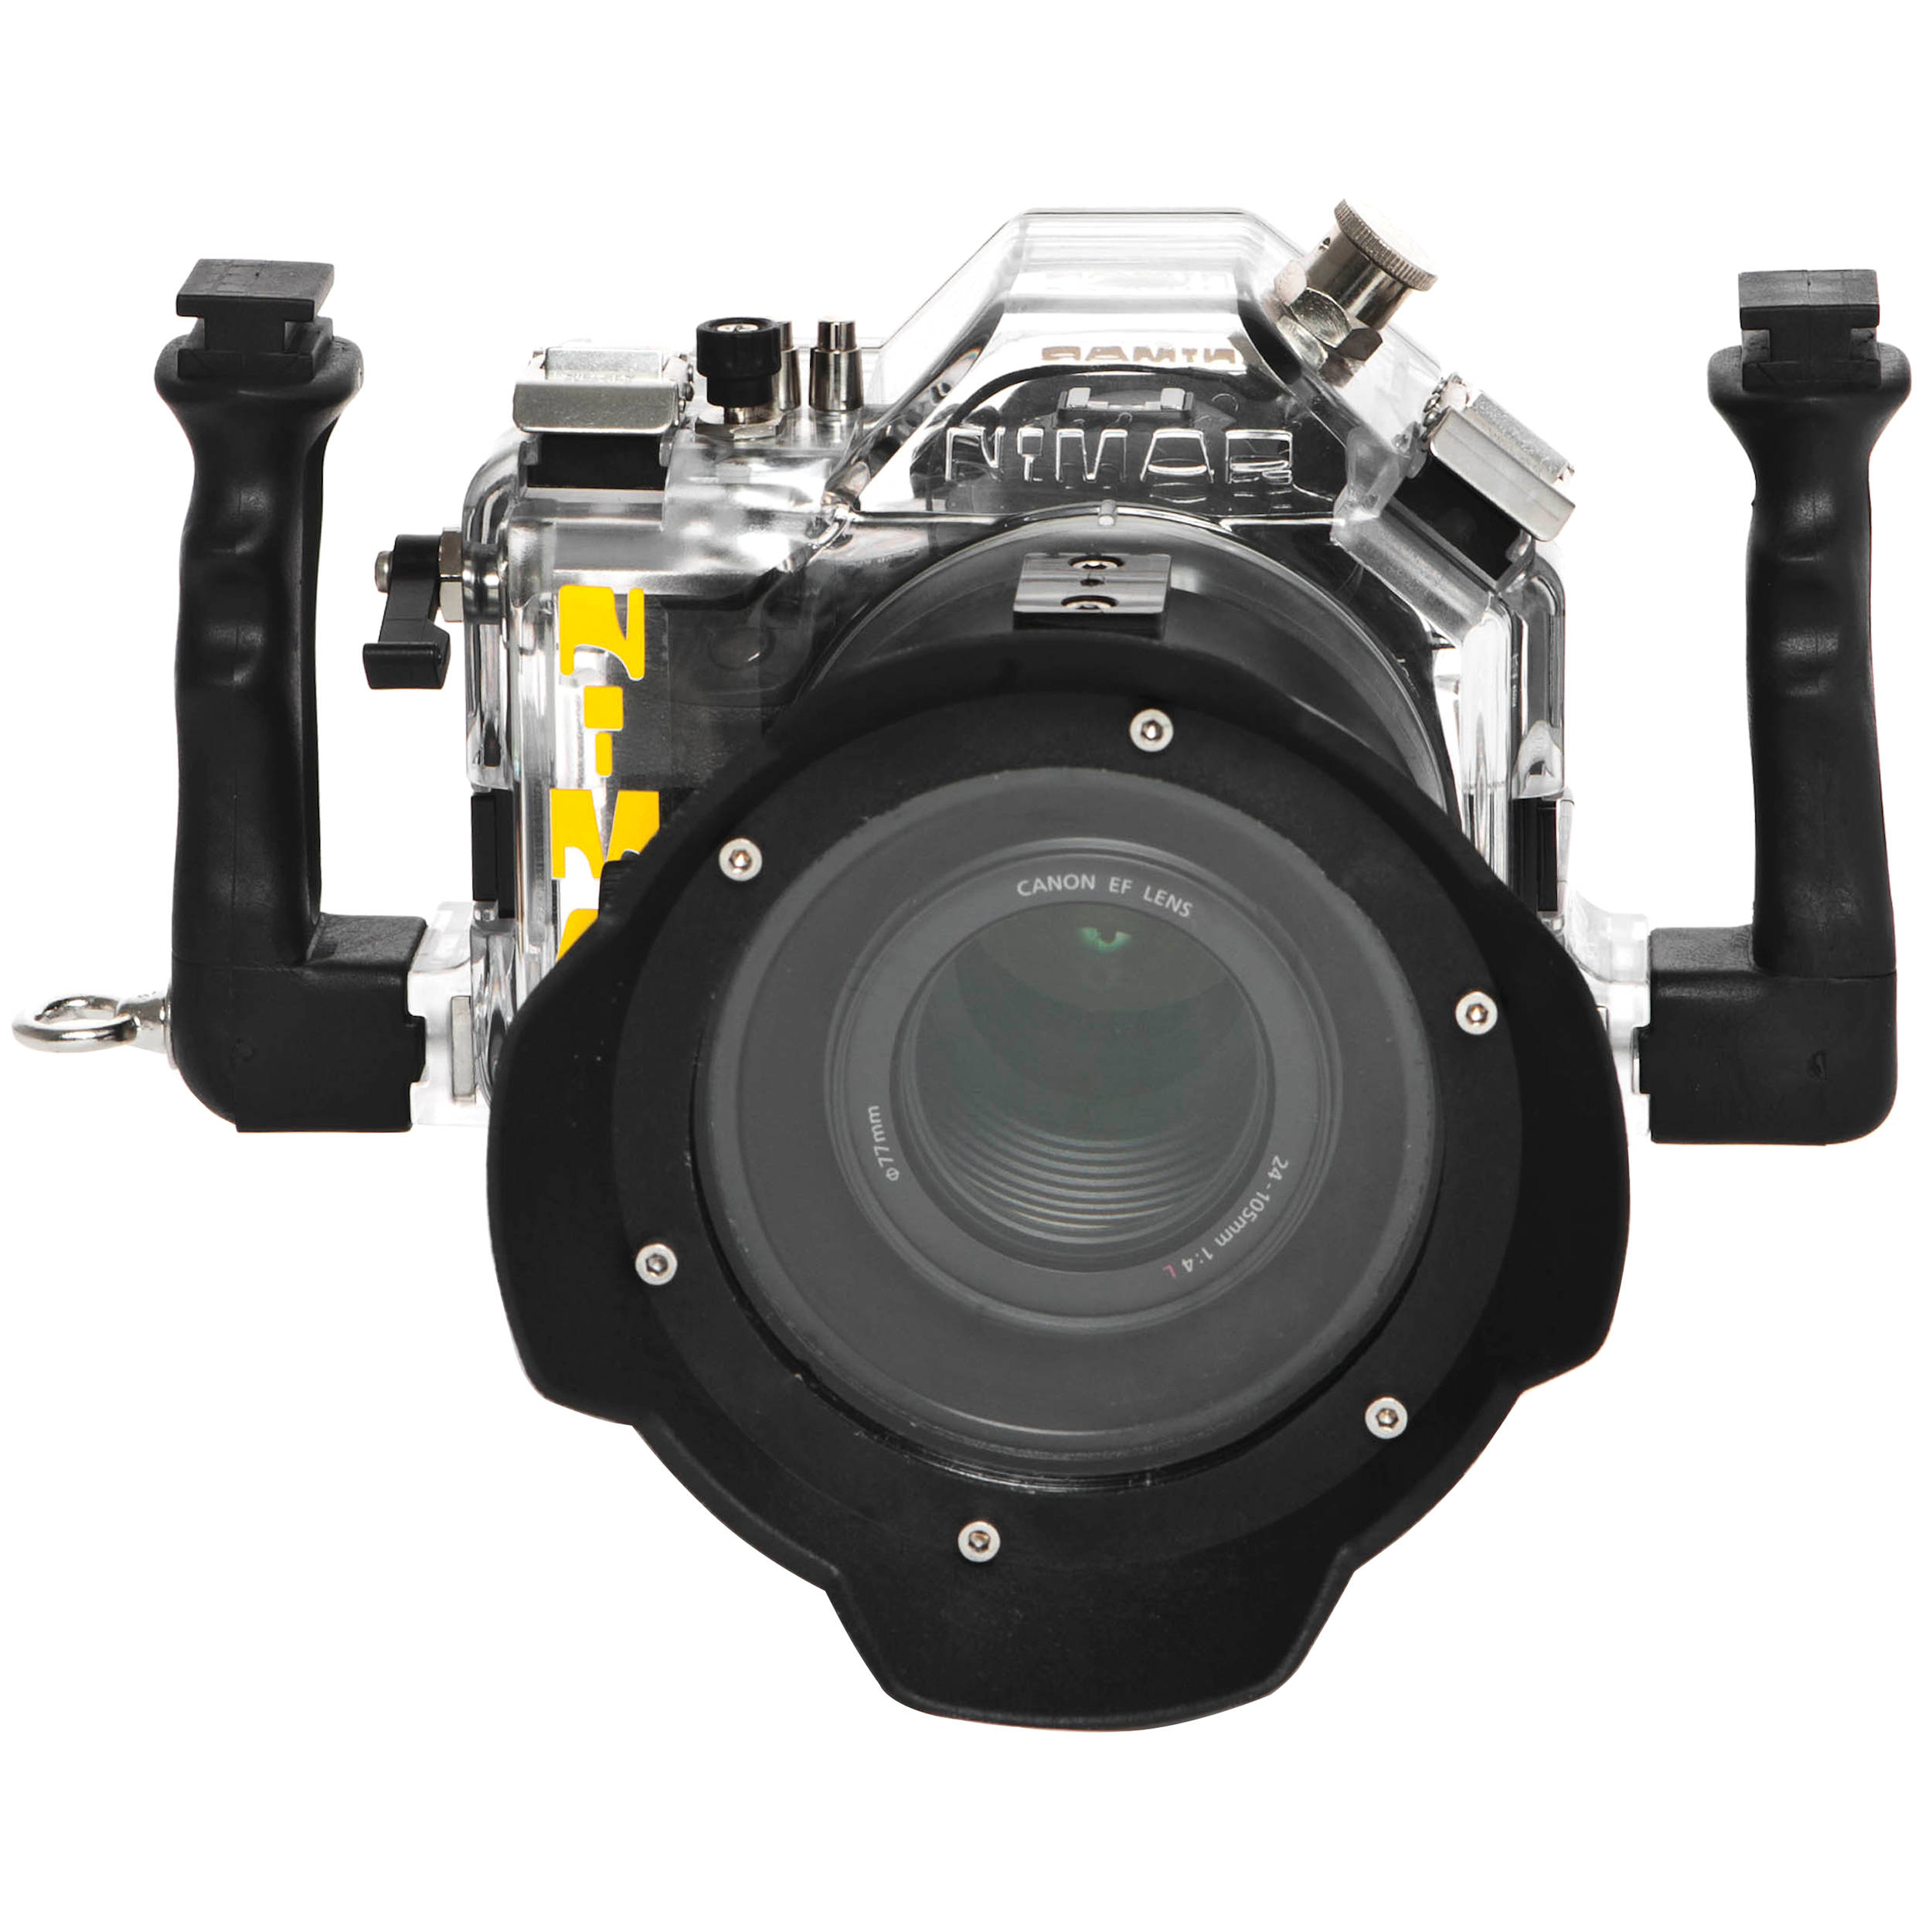 Camera Dslr Camera Without Lens nimar underwater housing for canon eos 7d dslr camera ni7d bh without lens port shown with optional accessories